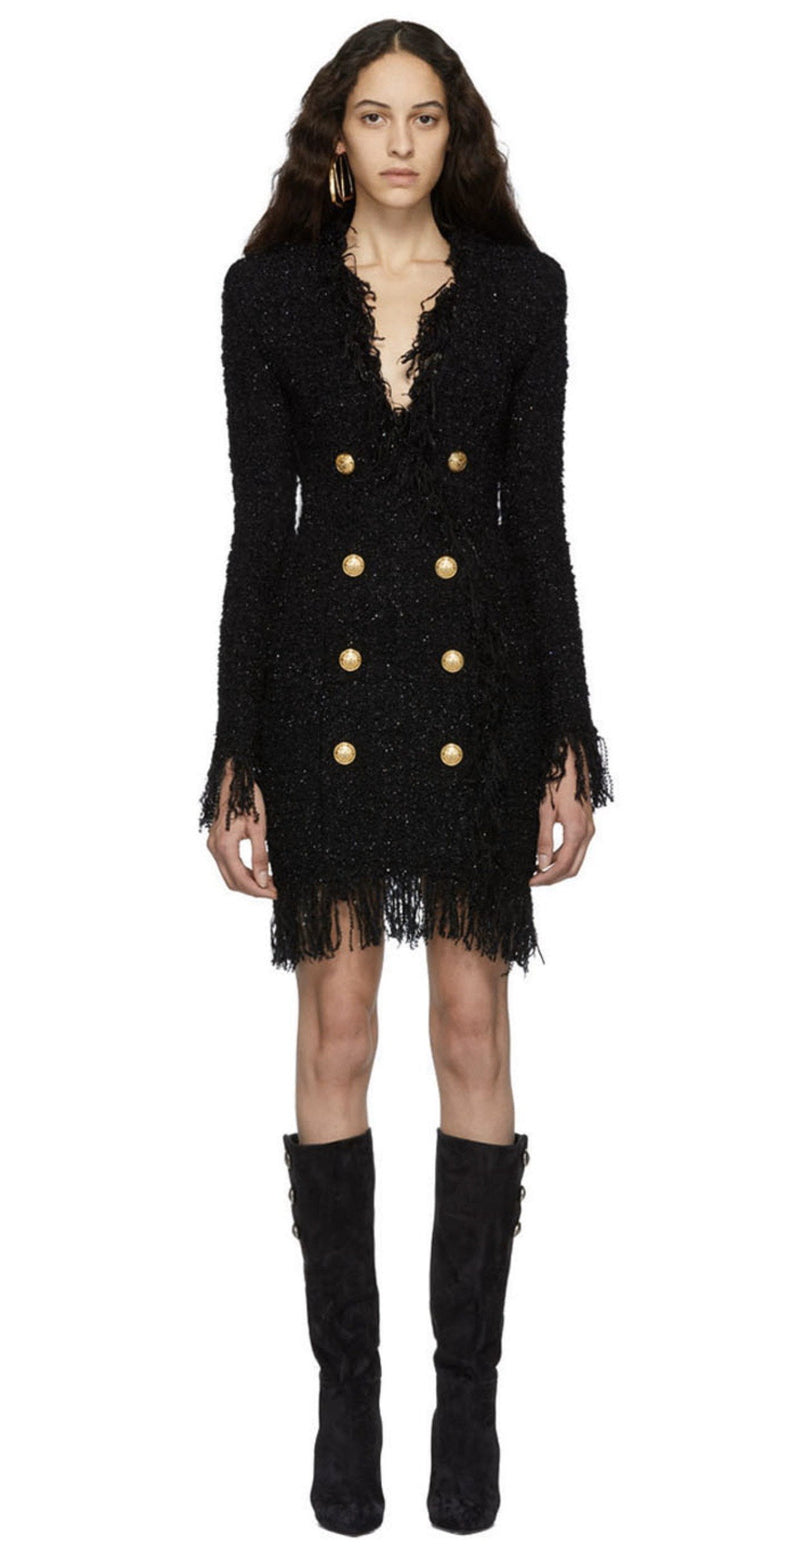 Jessica Bara Maria Tweed Fringe Gold Button Blazer Dress